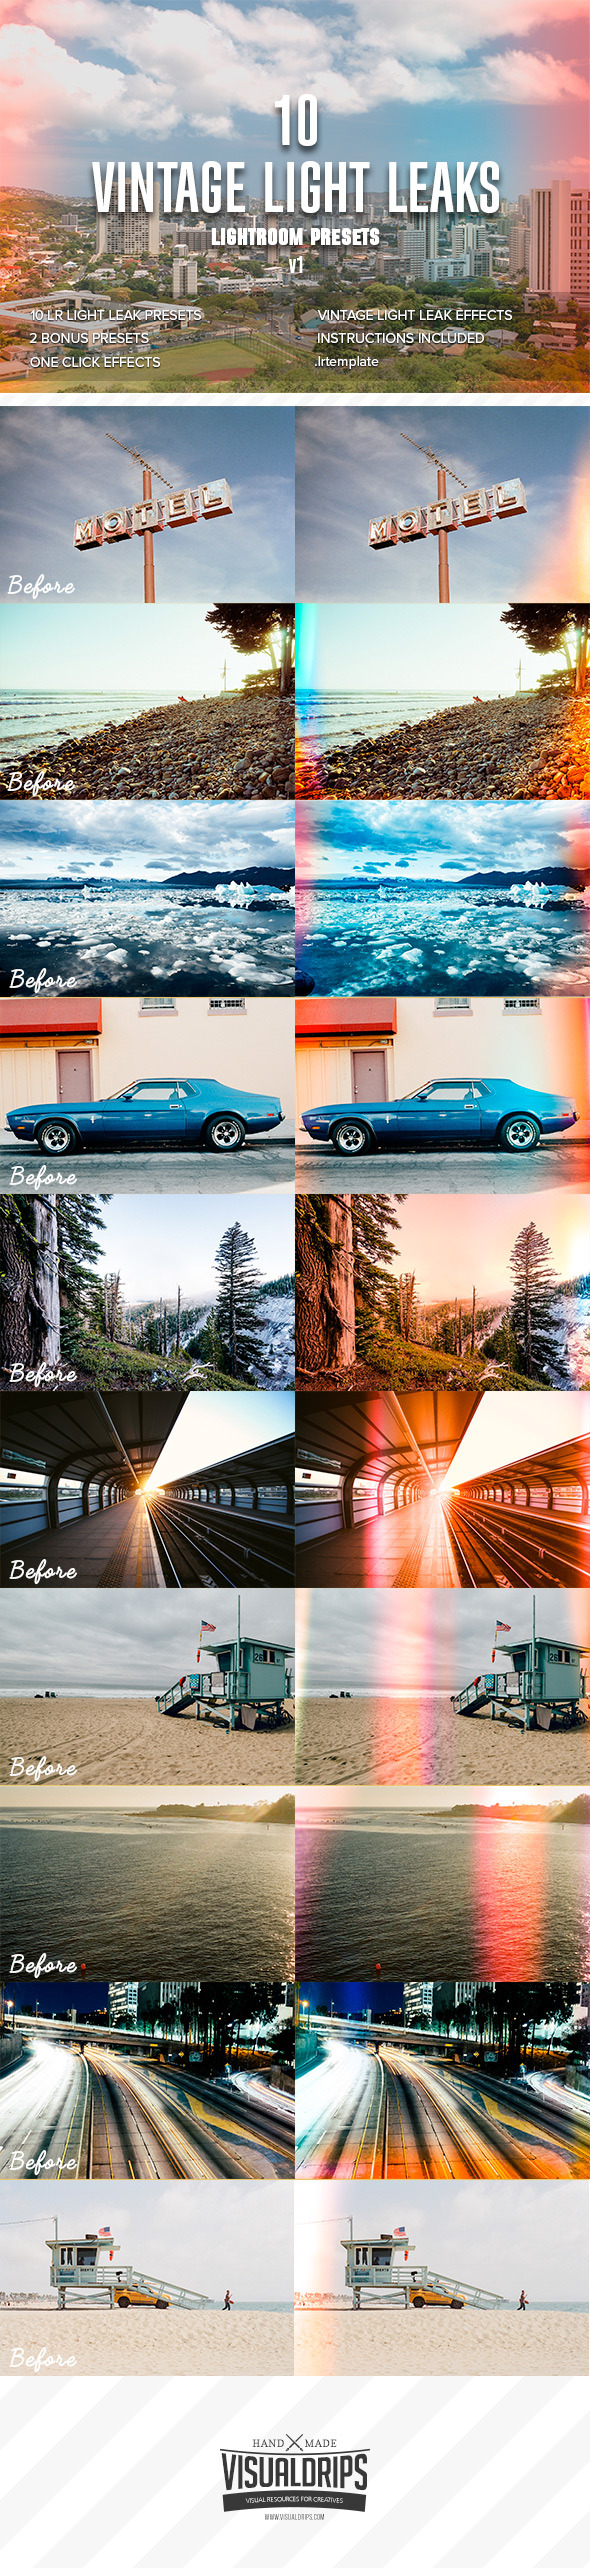 GraphicRiver 10 Vintage Light Leaks vol.1 Lightroom Presets 11956978